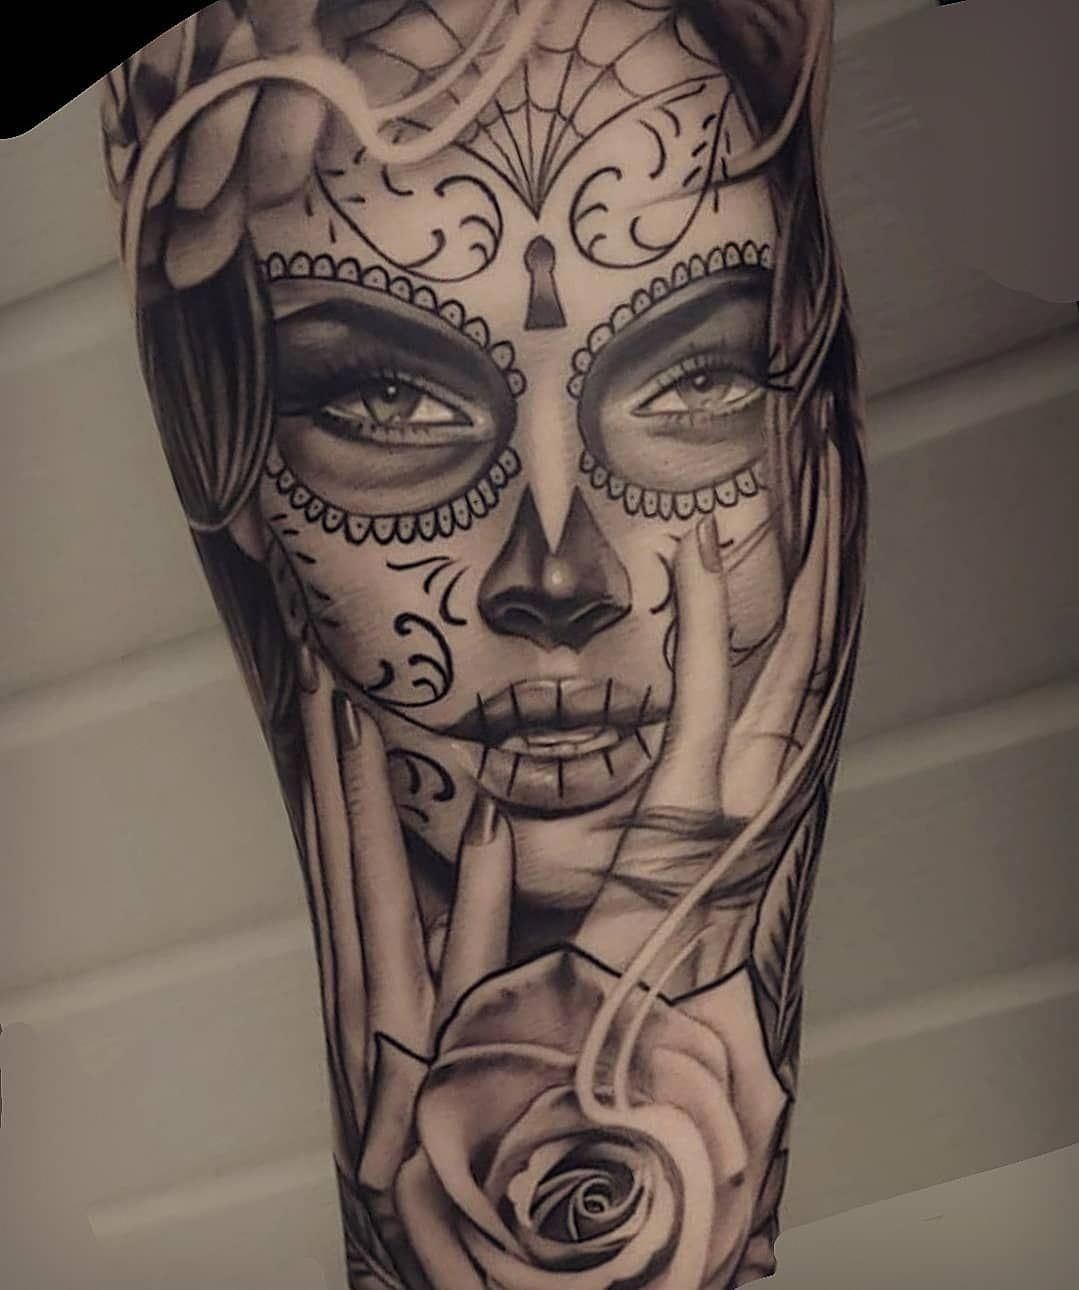 Pin By Krystal Shurling On Tatts In 2020 With Images Skull